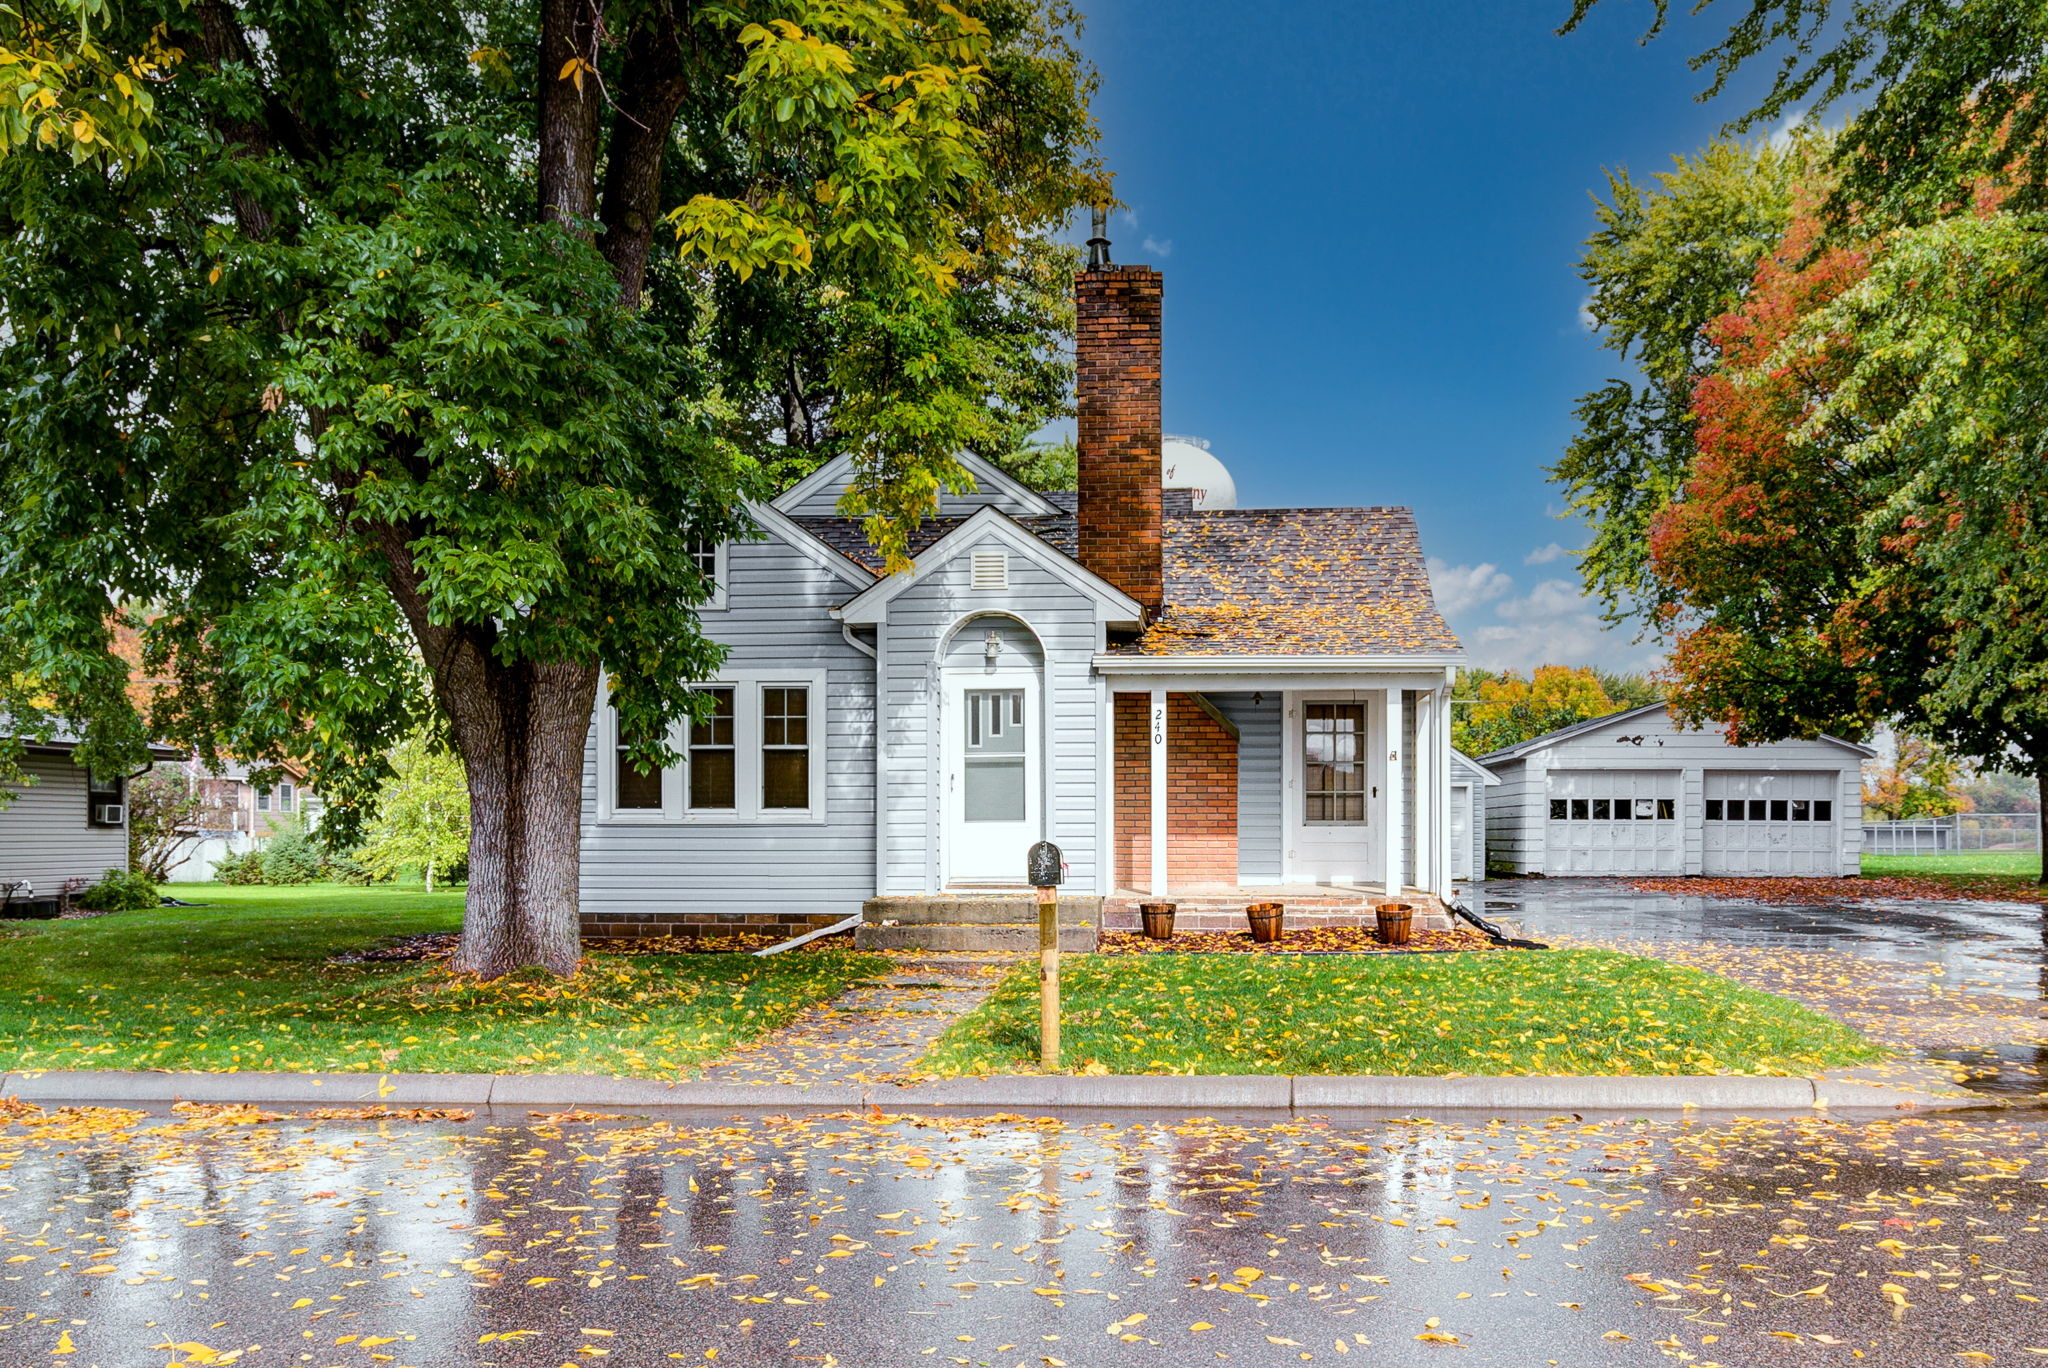 Refinished 3-Bedroom House In New Germany